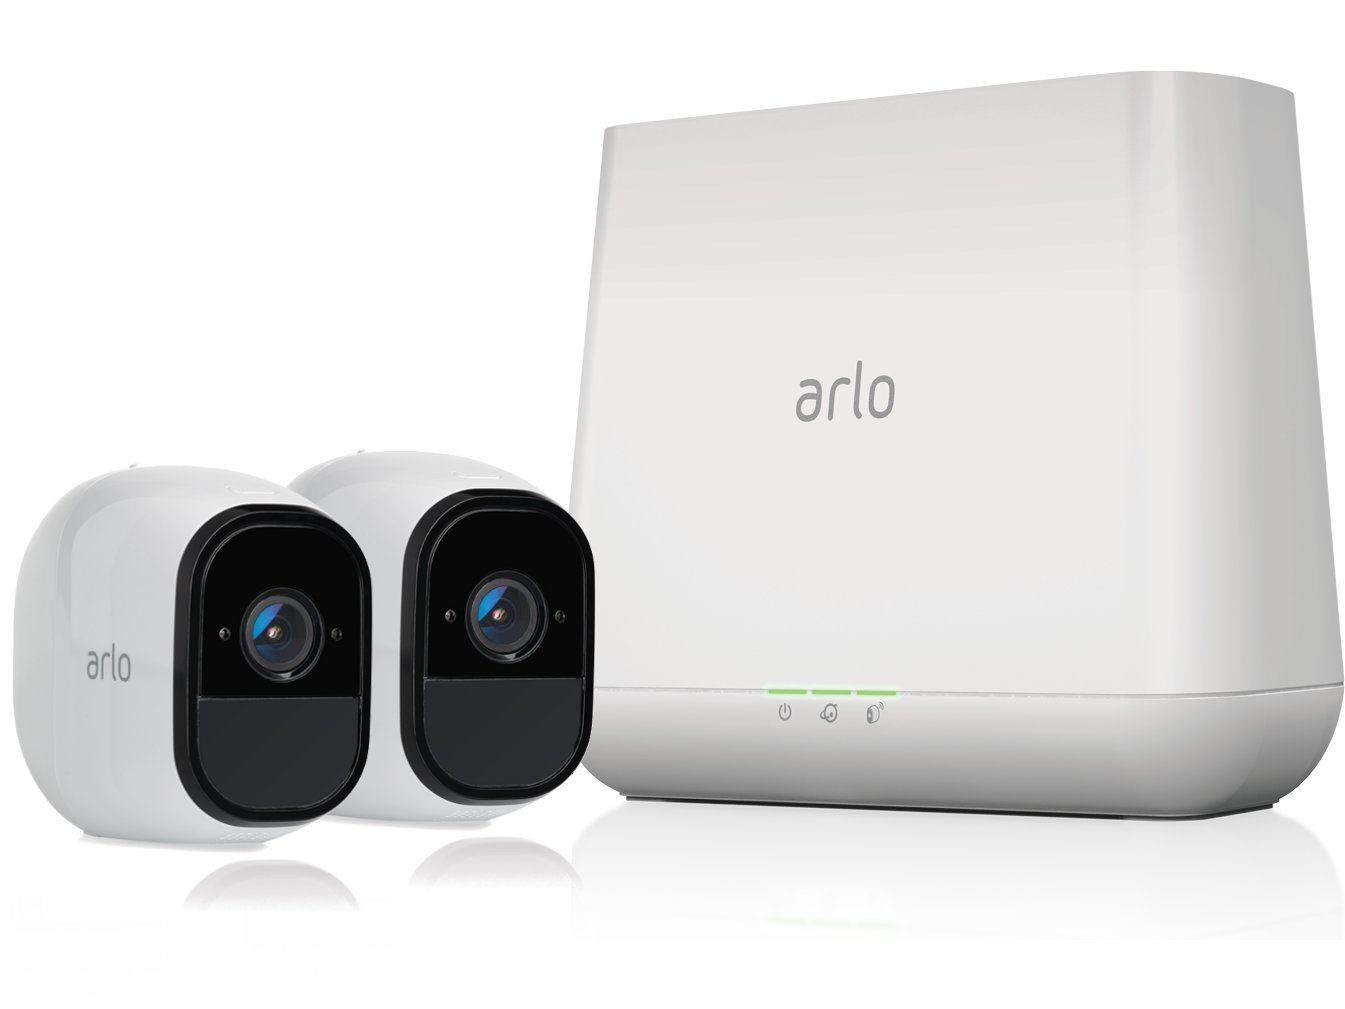 Arlo Pro Wireless Home Security Camera System with Siren | Rechargeable Night vision Indoor Outdoor HD Video 2 Way Audio Wall Mount | Cloud Storage Included | 2 camera kit VMS4230